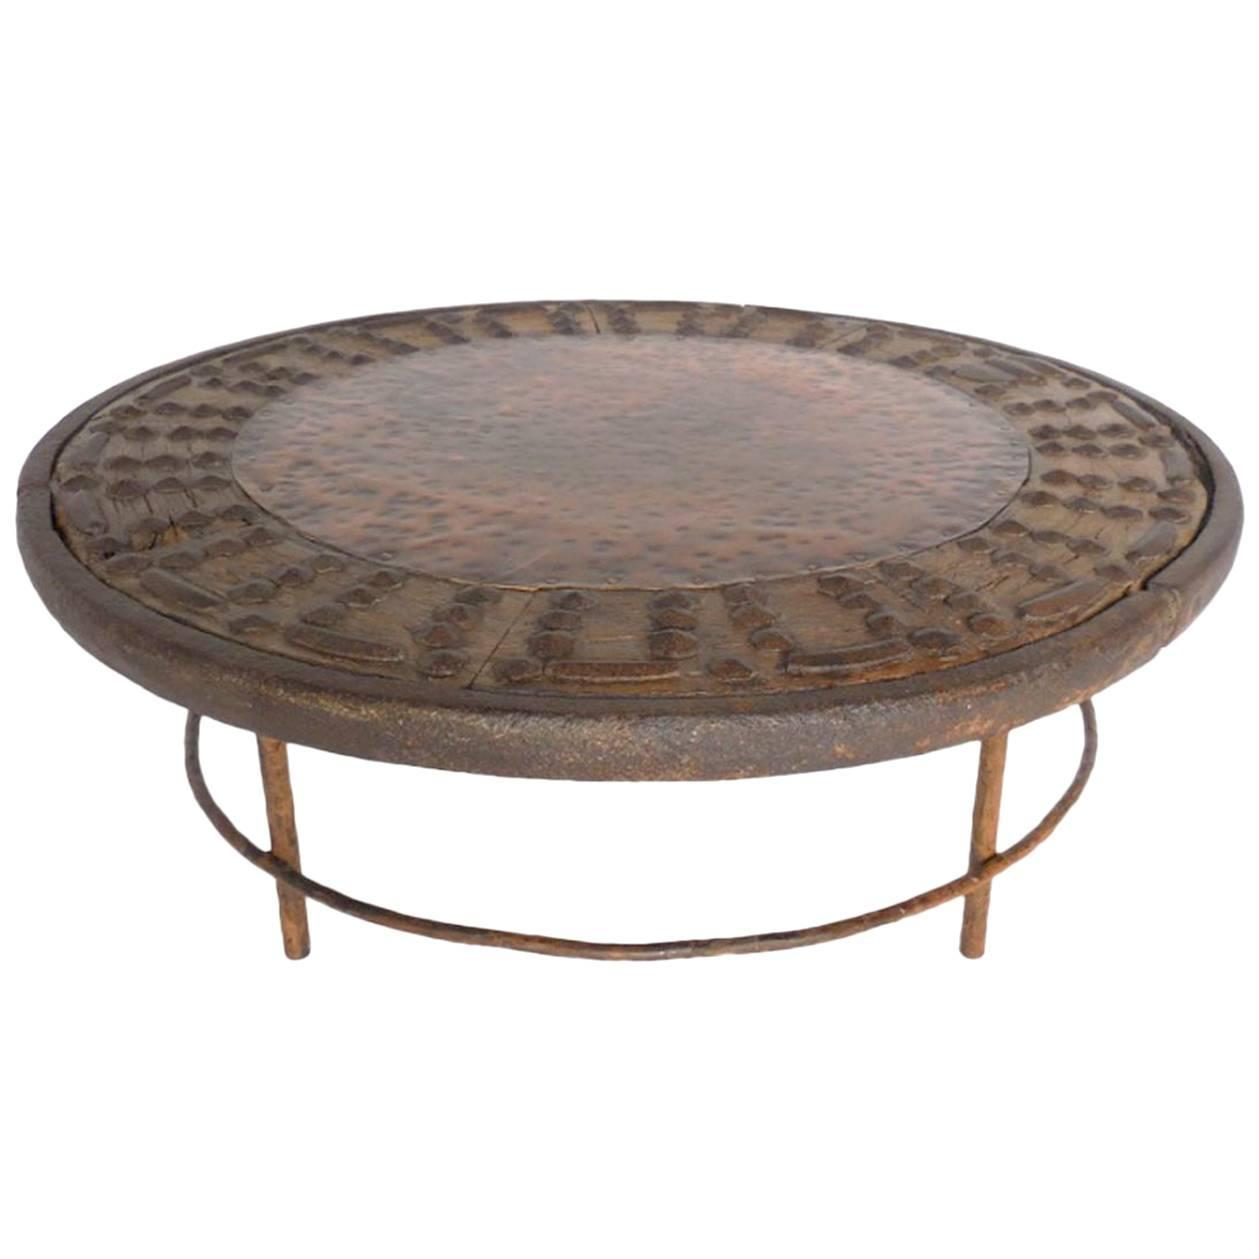 Rustic round copper cocktail table for sale at 1stdibs Round rustic coffee table